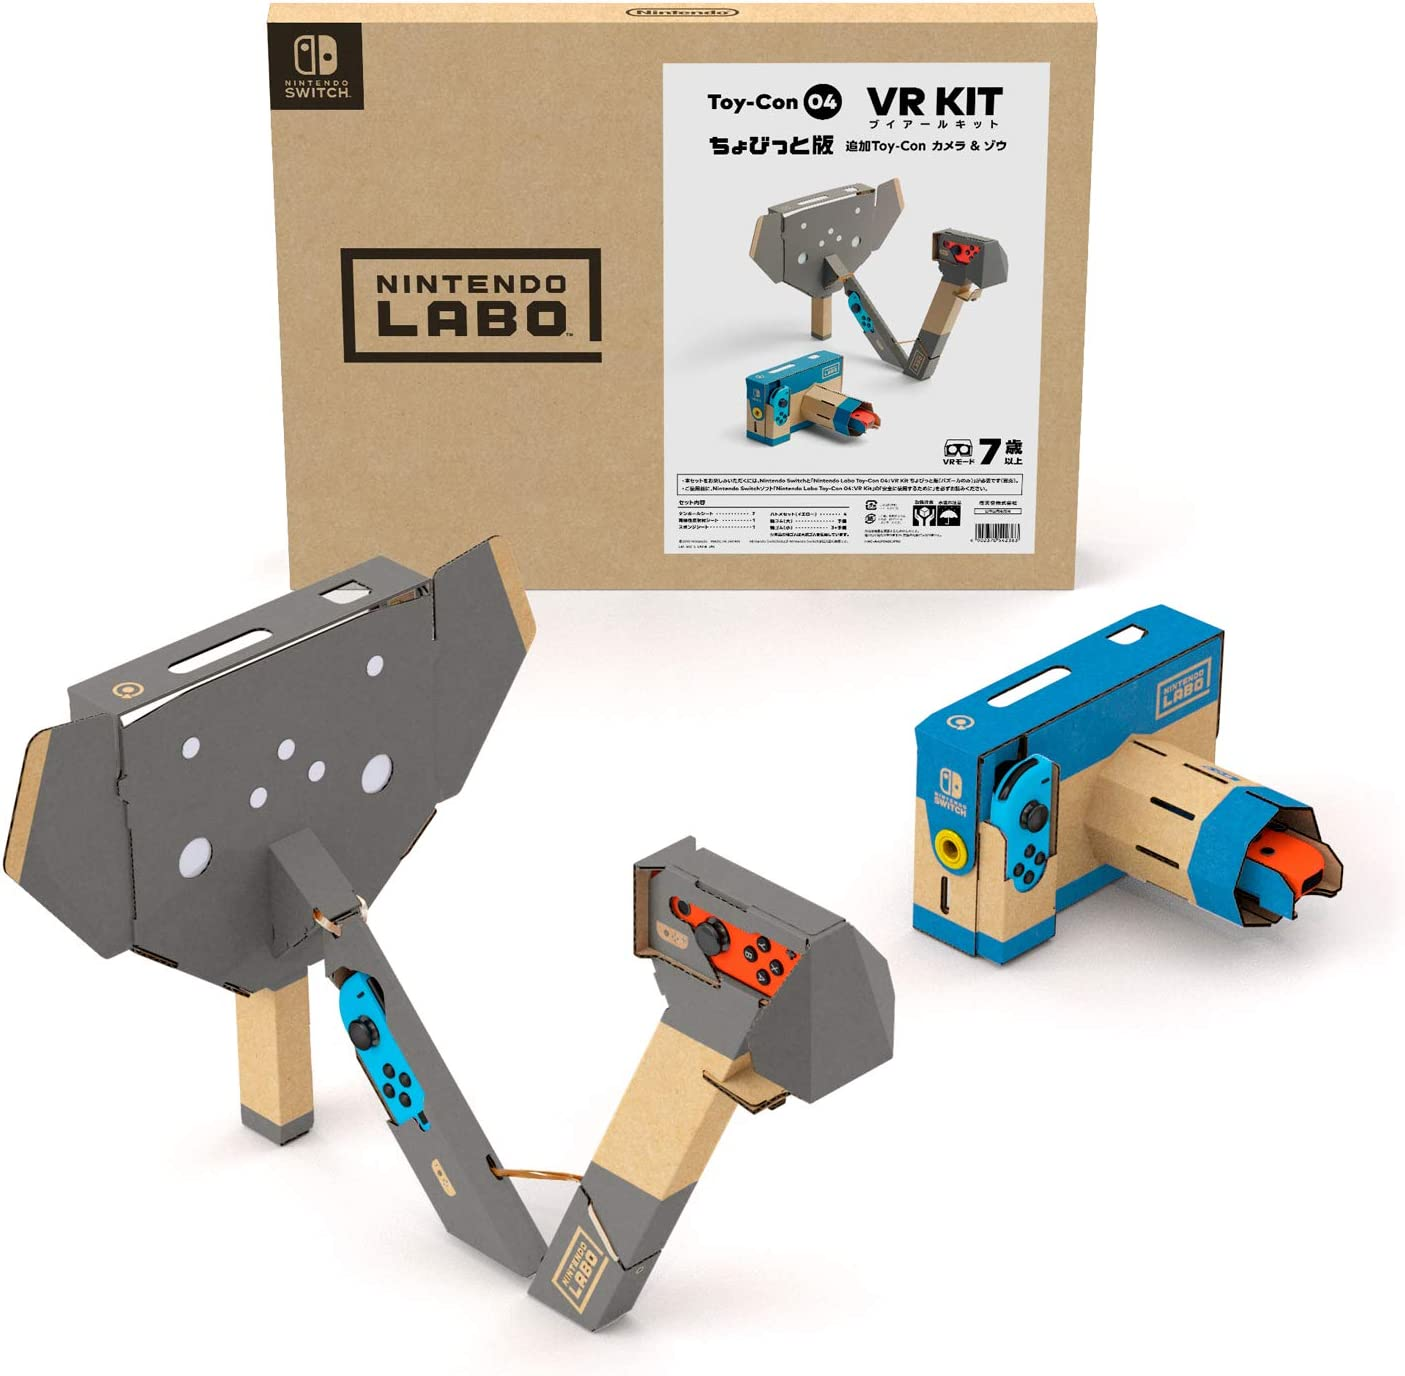 Nintendo Labo Laboratorio Toy-con 04: bit Edition Piccolo VR Kit ...